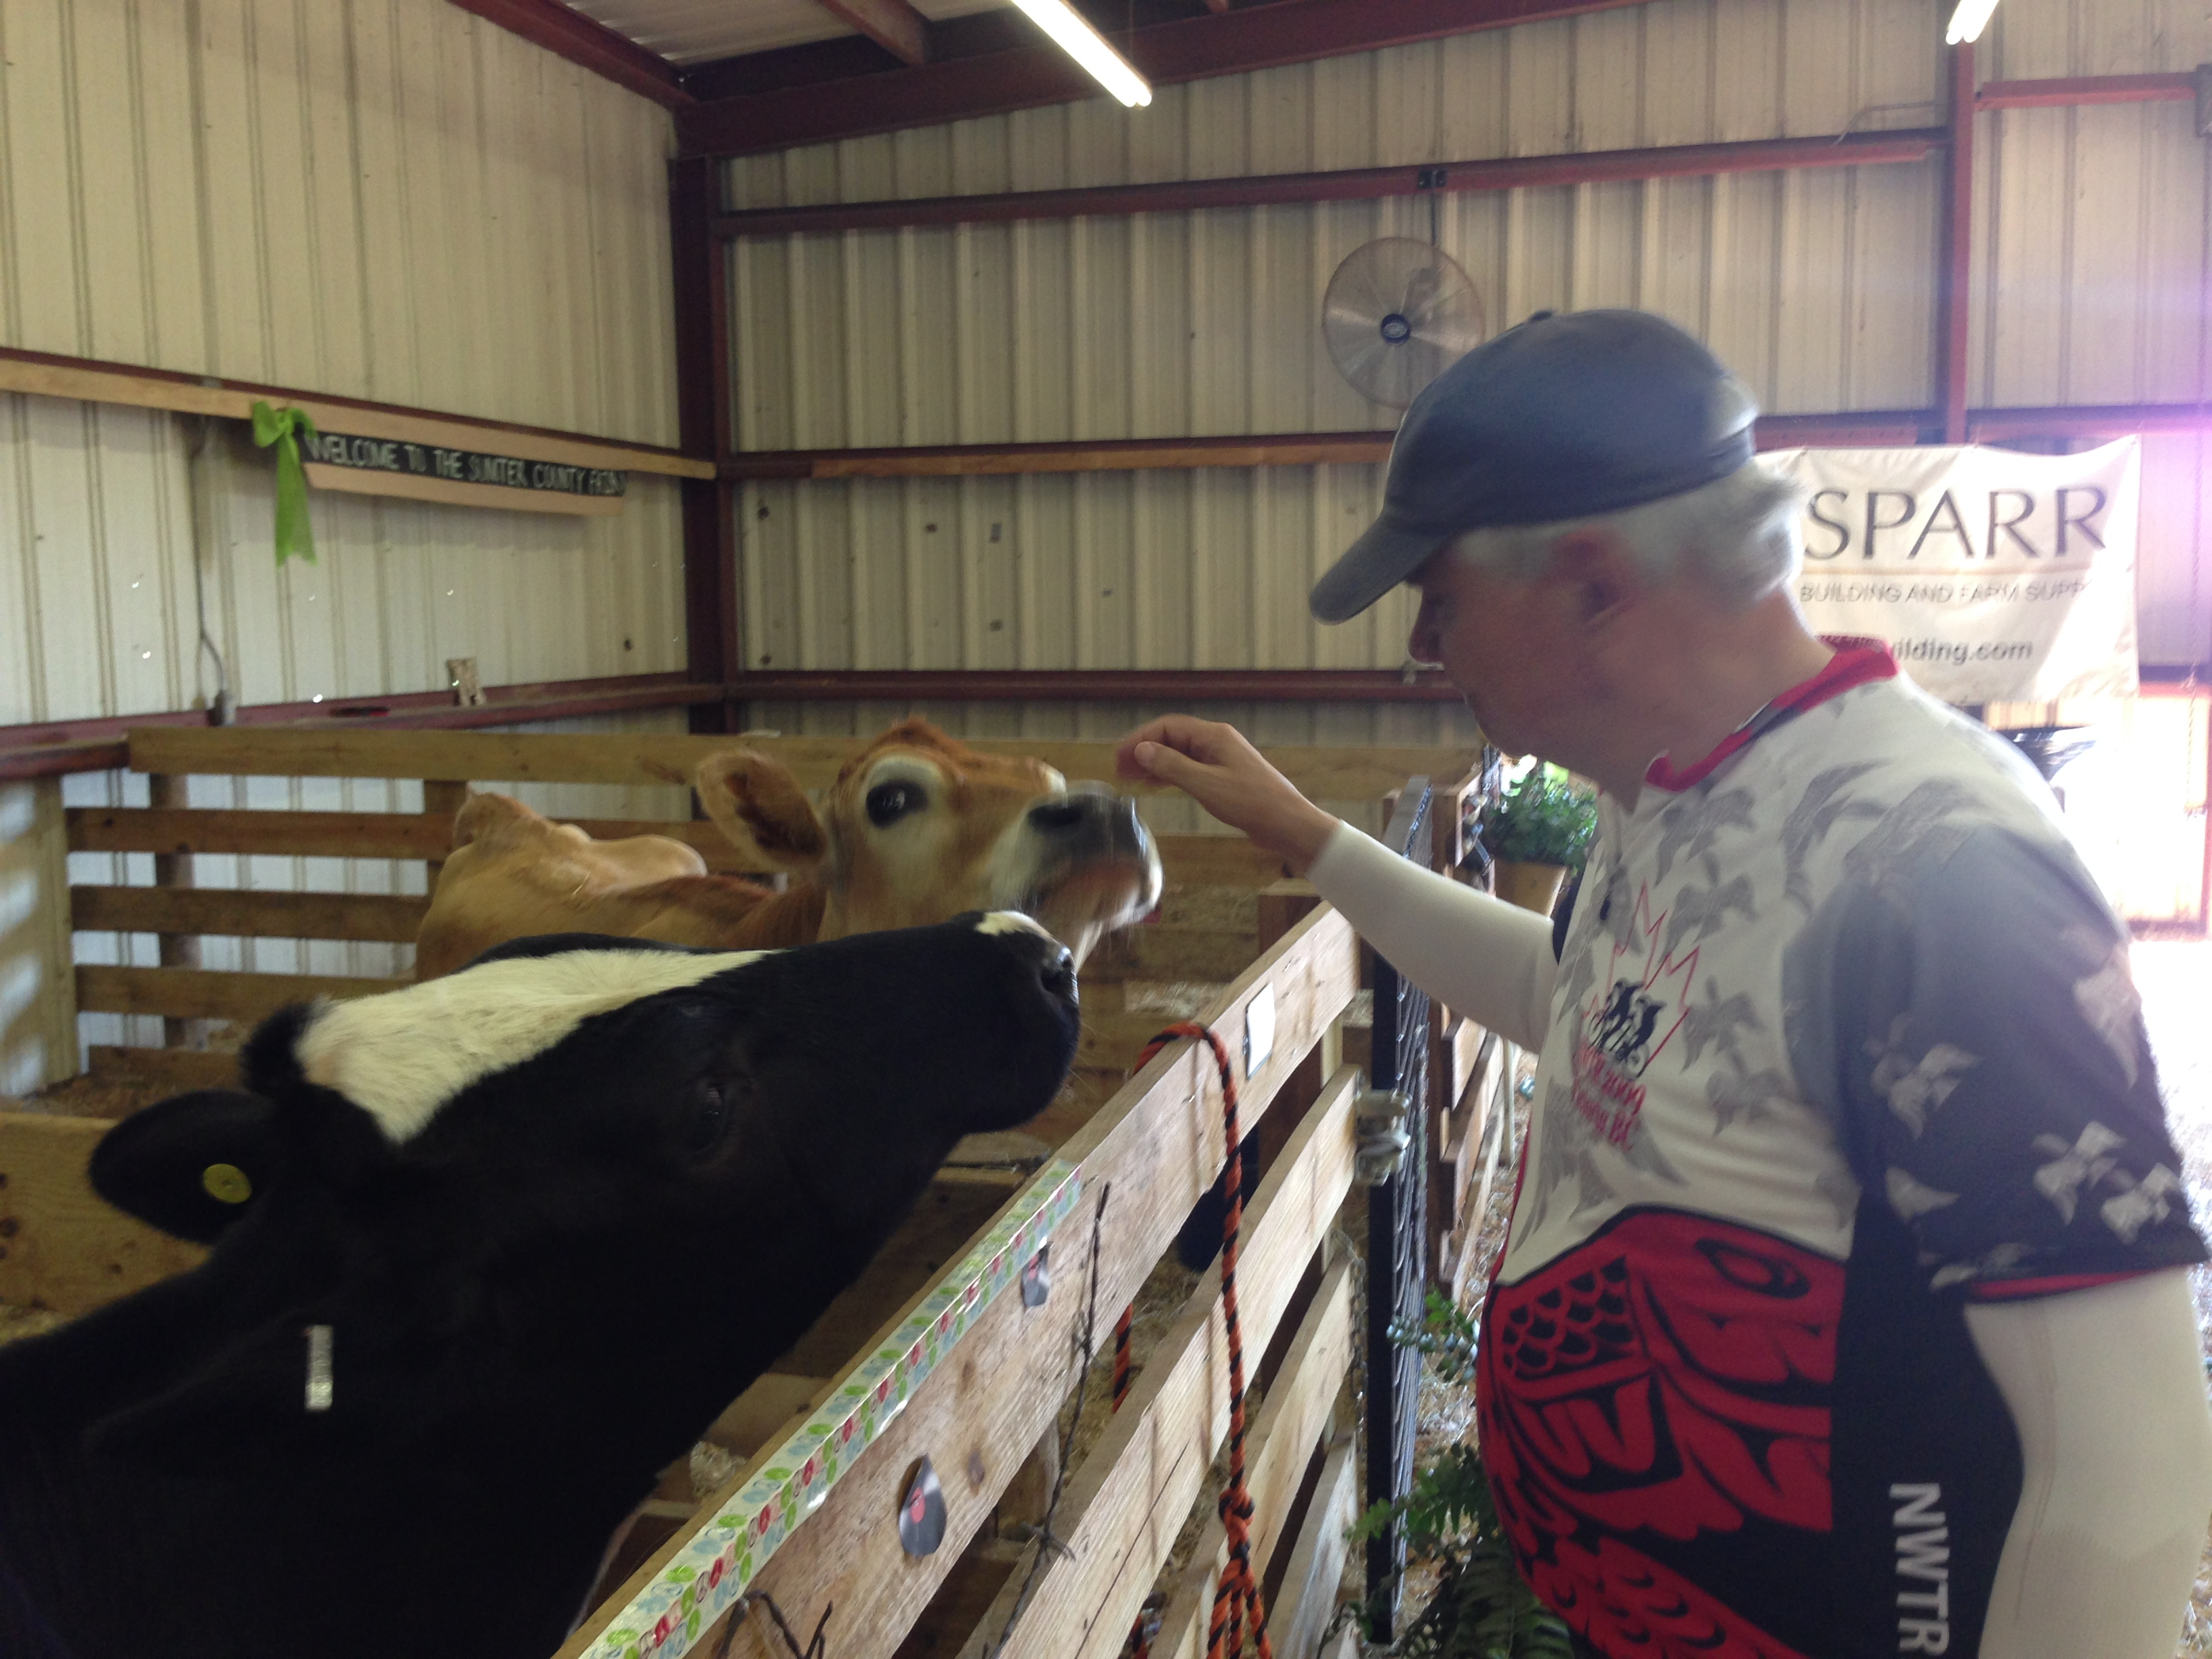 While the Fair wasn't yet open, we could view the 4H animals.